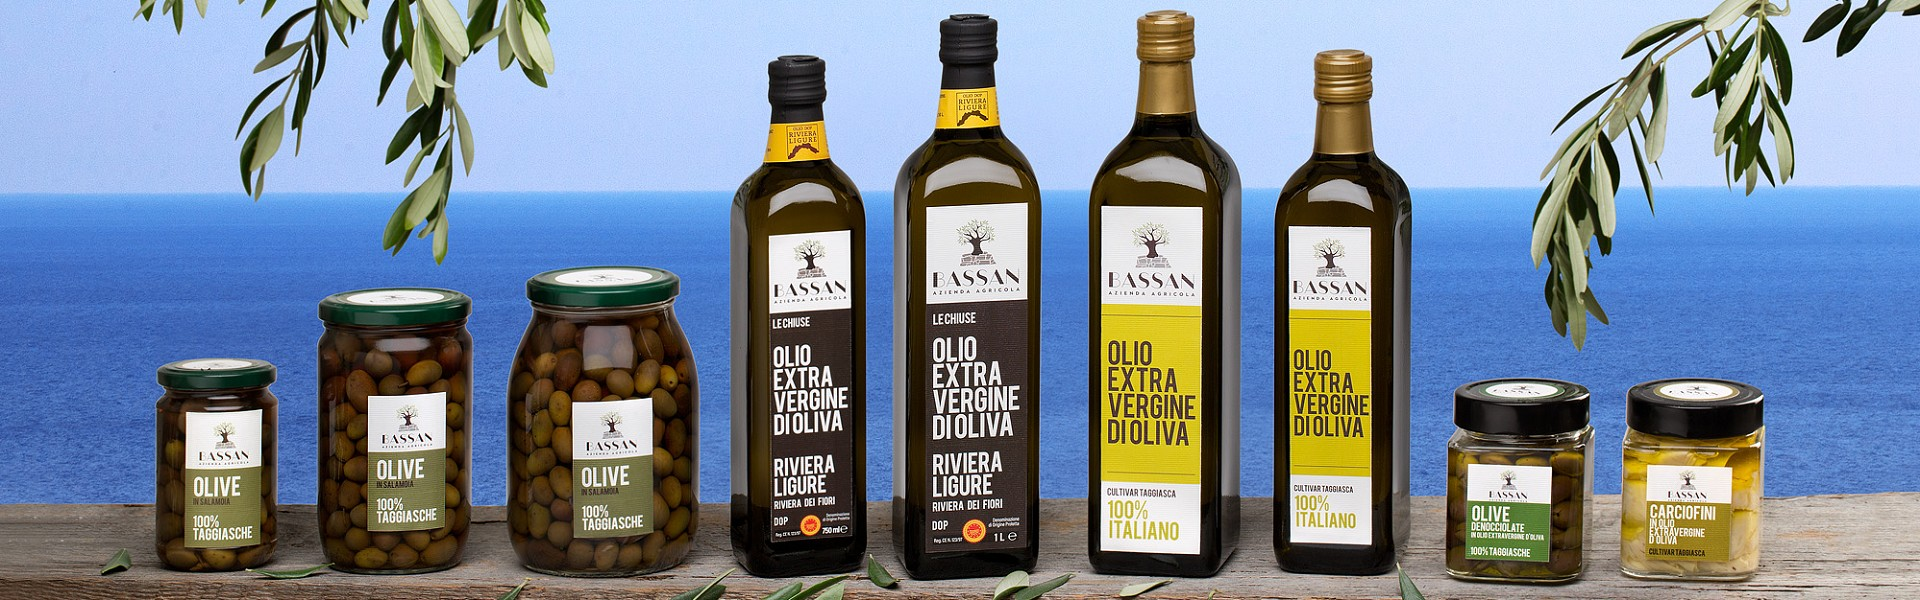 authentic italian olive oil | ligurian olive oil online shop | italian olive oil price ligurian